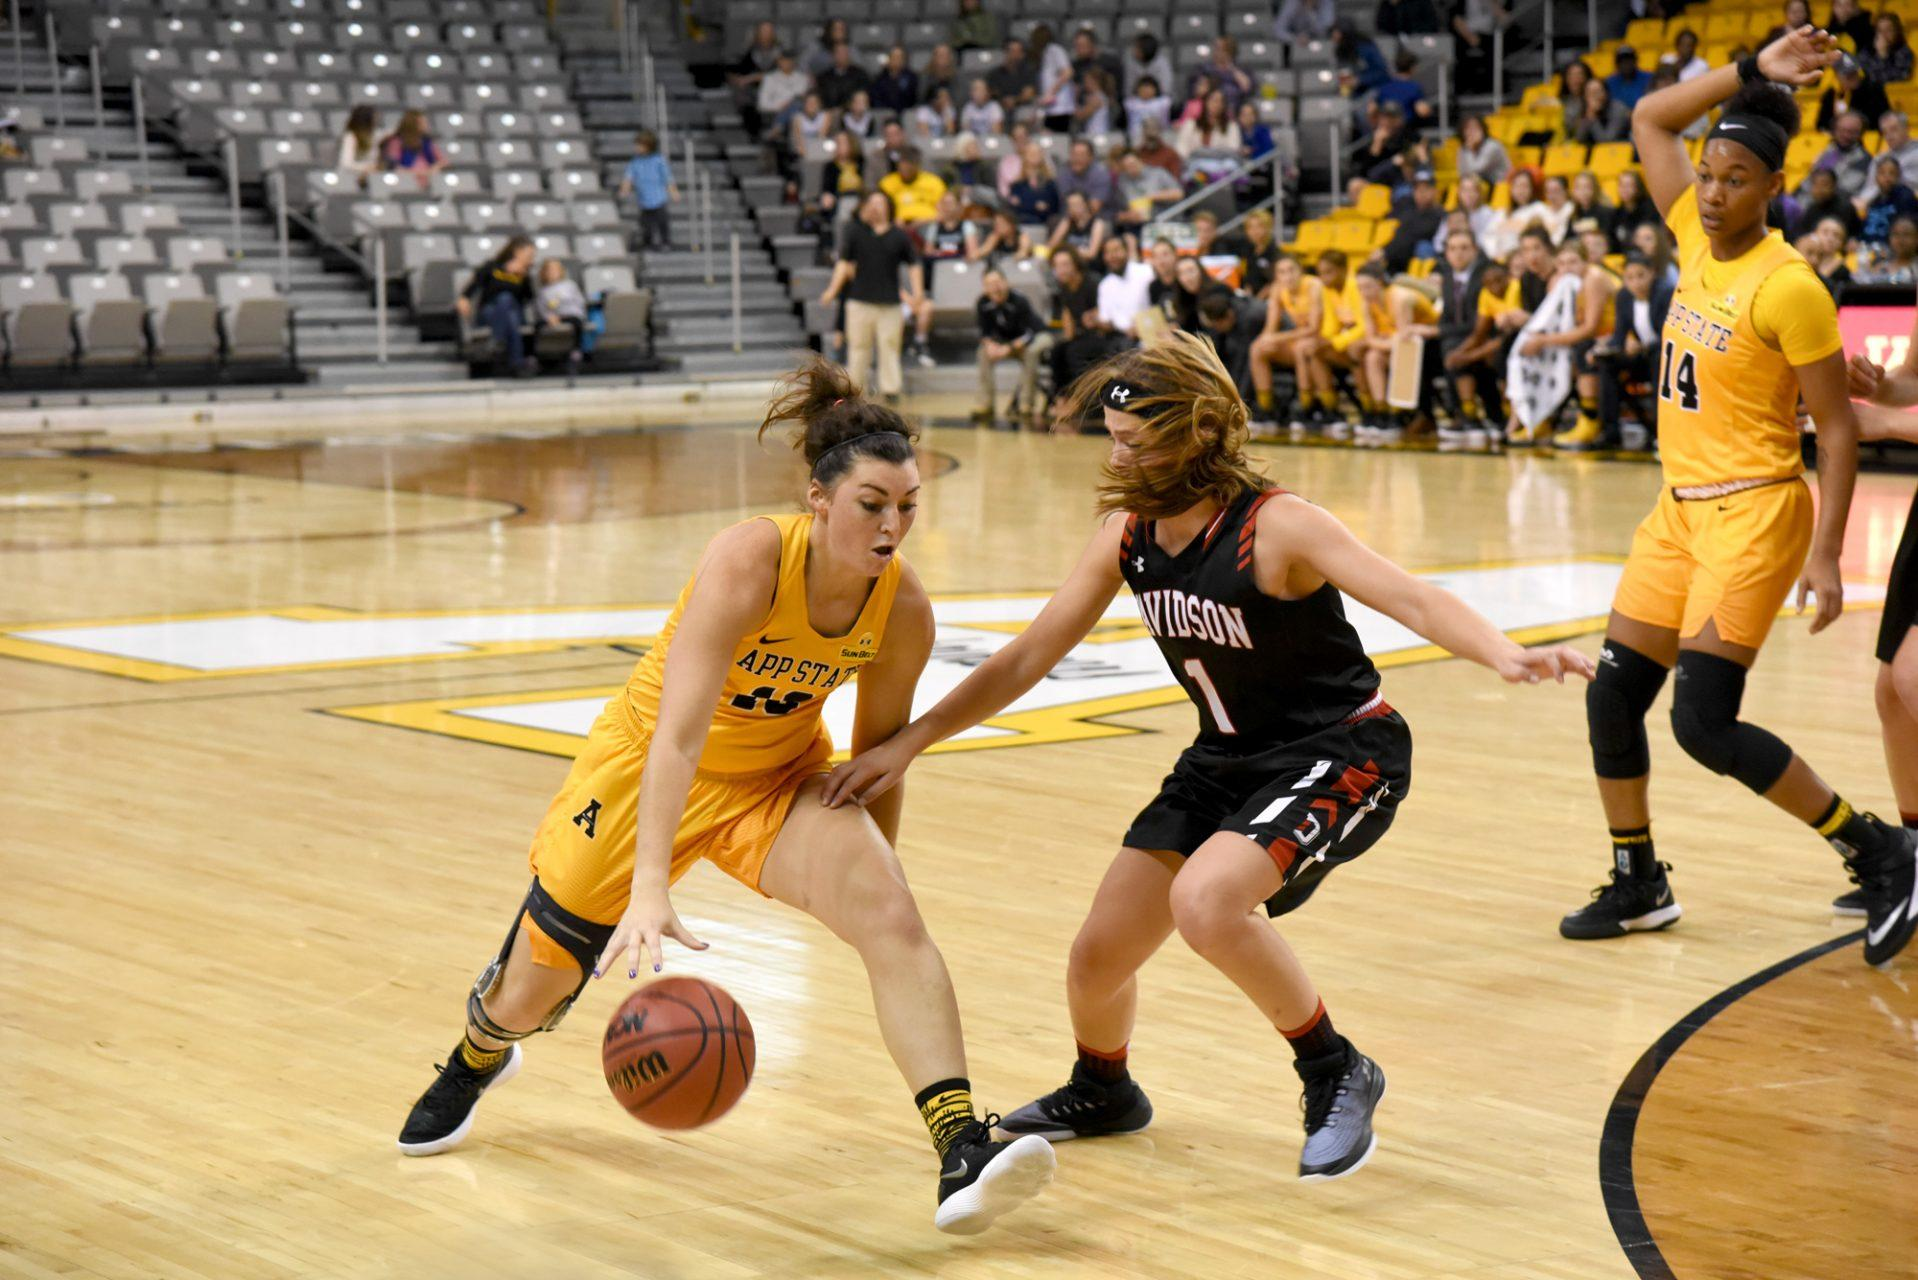 Sophomore guard Kaila Craven dribbling the ball around a player from Davidson and towards the basket On Sunday, November 19th. The Mountaineers lost the game with the final score being 59-57.